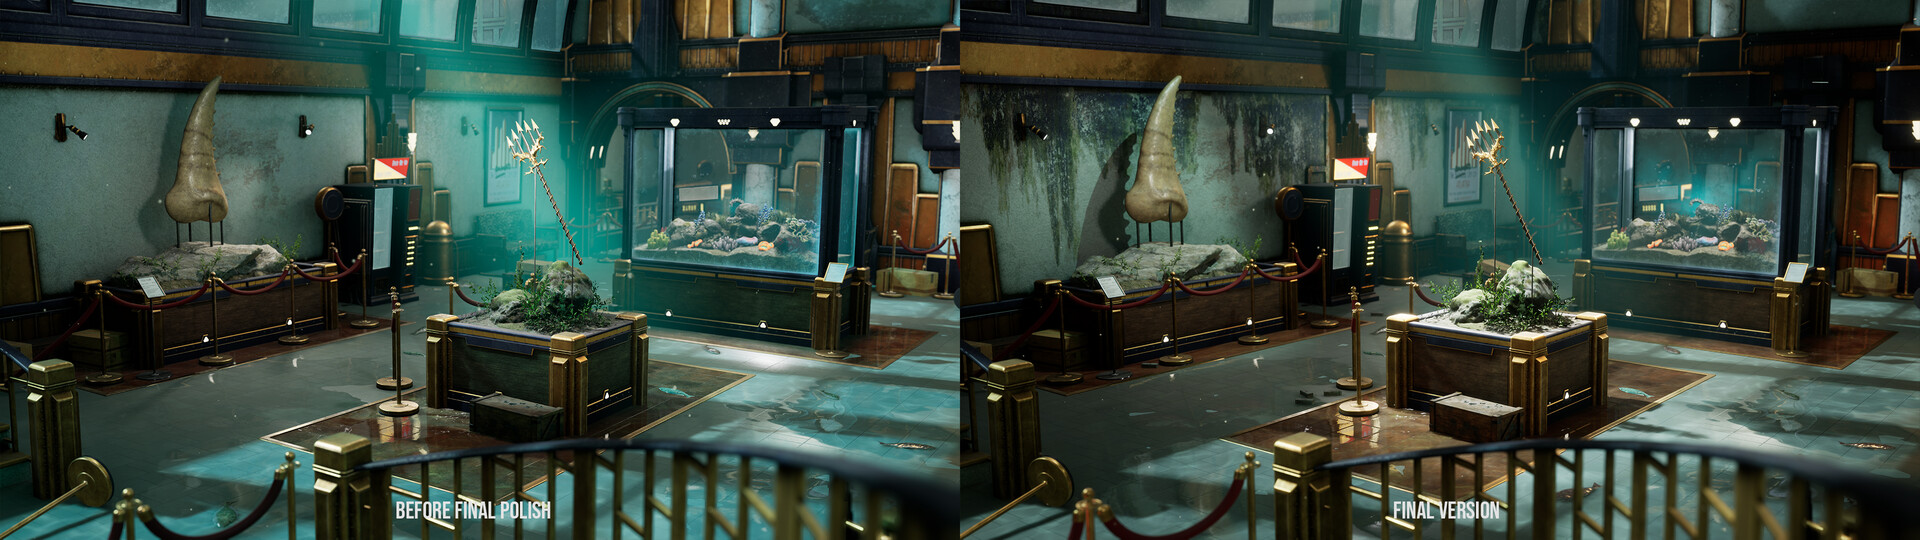 When I finished this environment for my class, the left image was the finished result. After the class ended I knew I wanted to push it a tad further, with additional polishing of the lighting and setdressing (with addition of moldy/leaky decals)